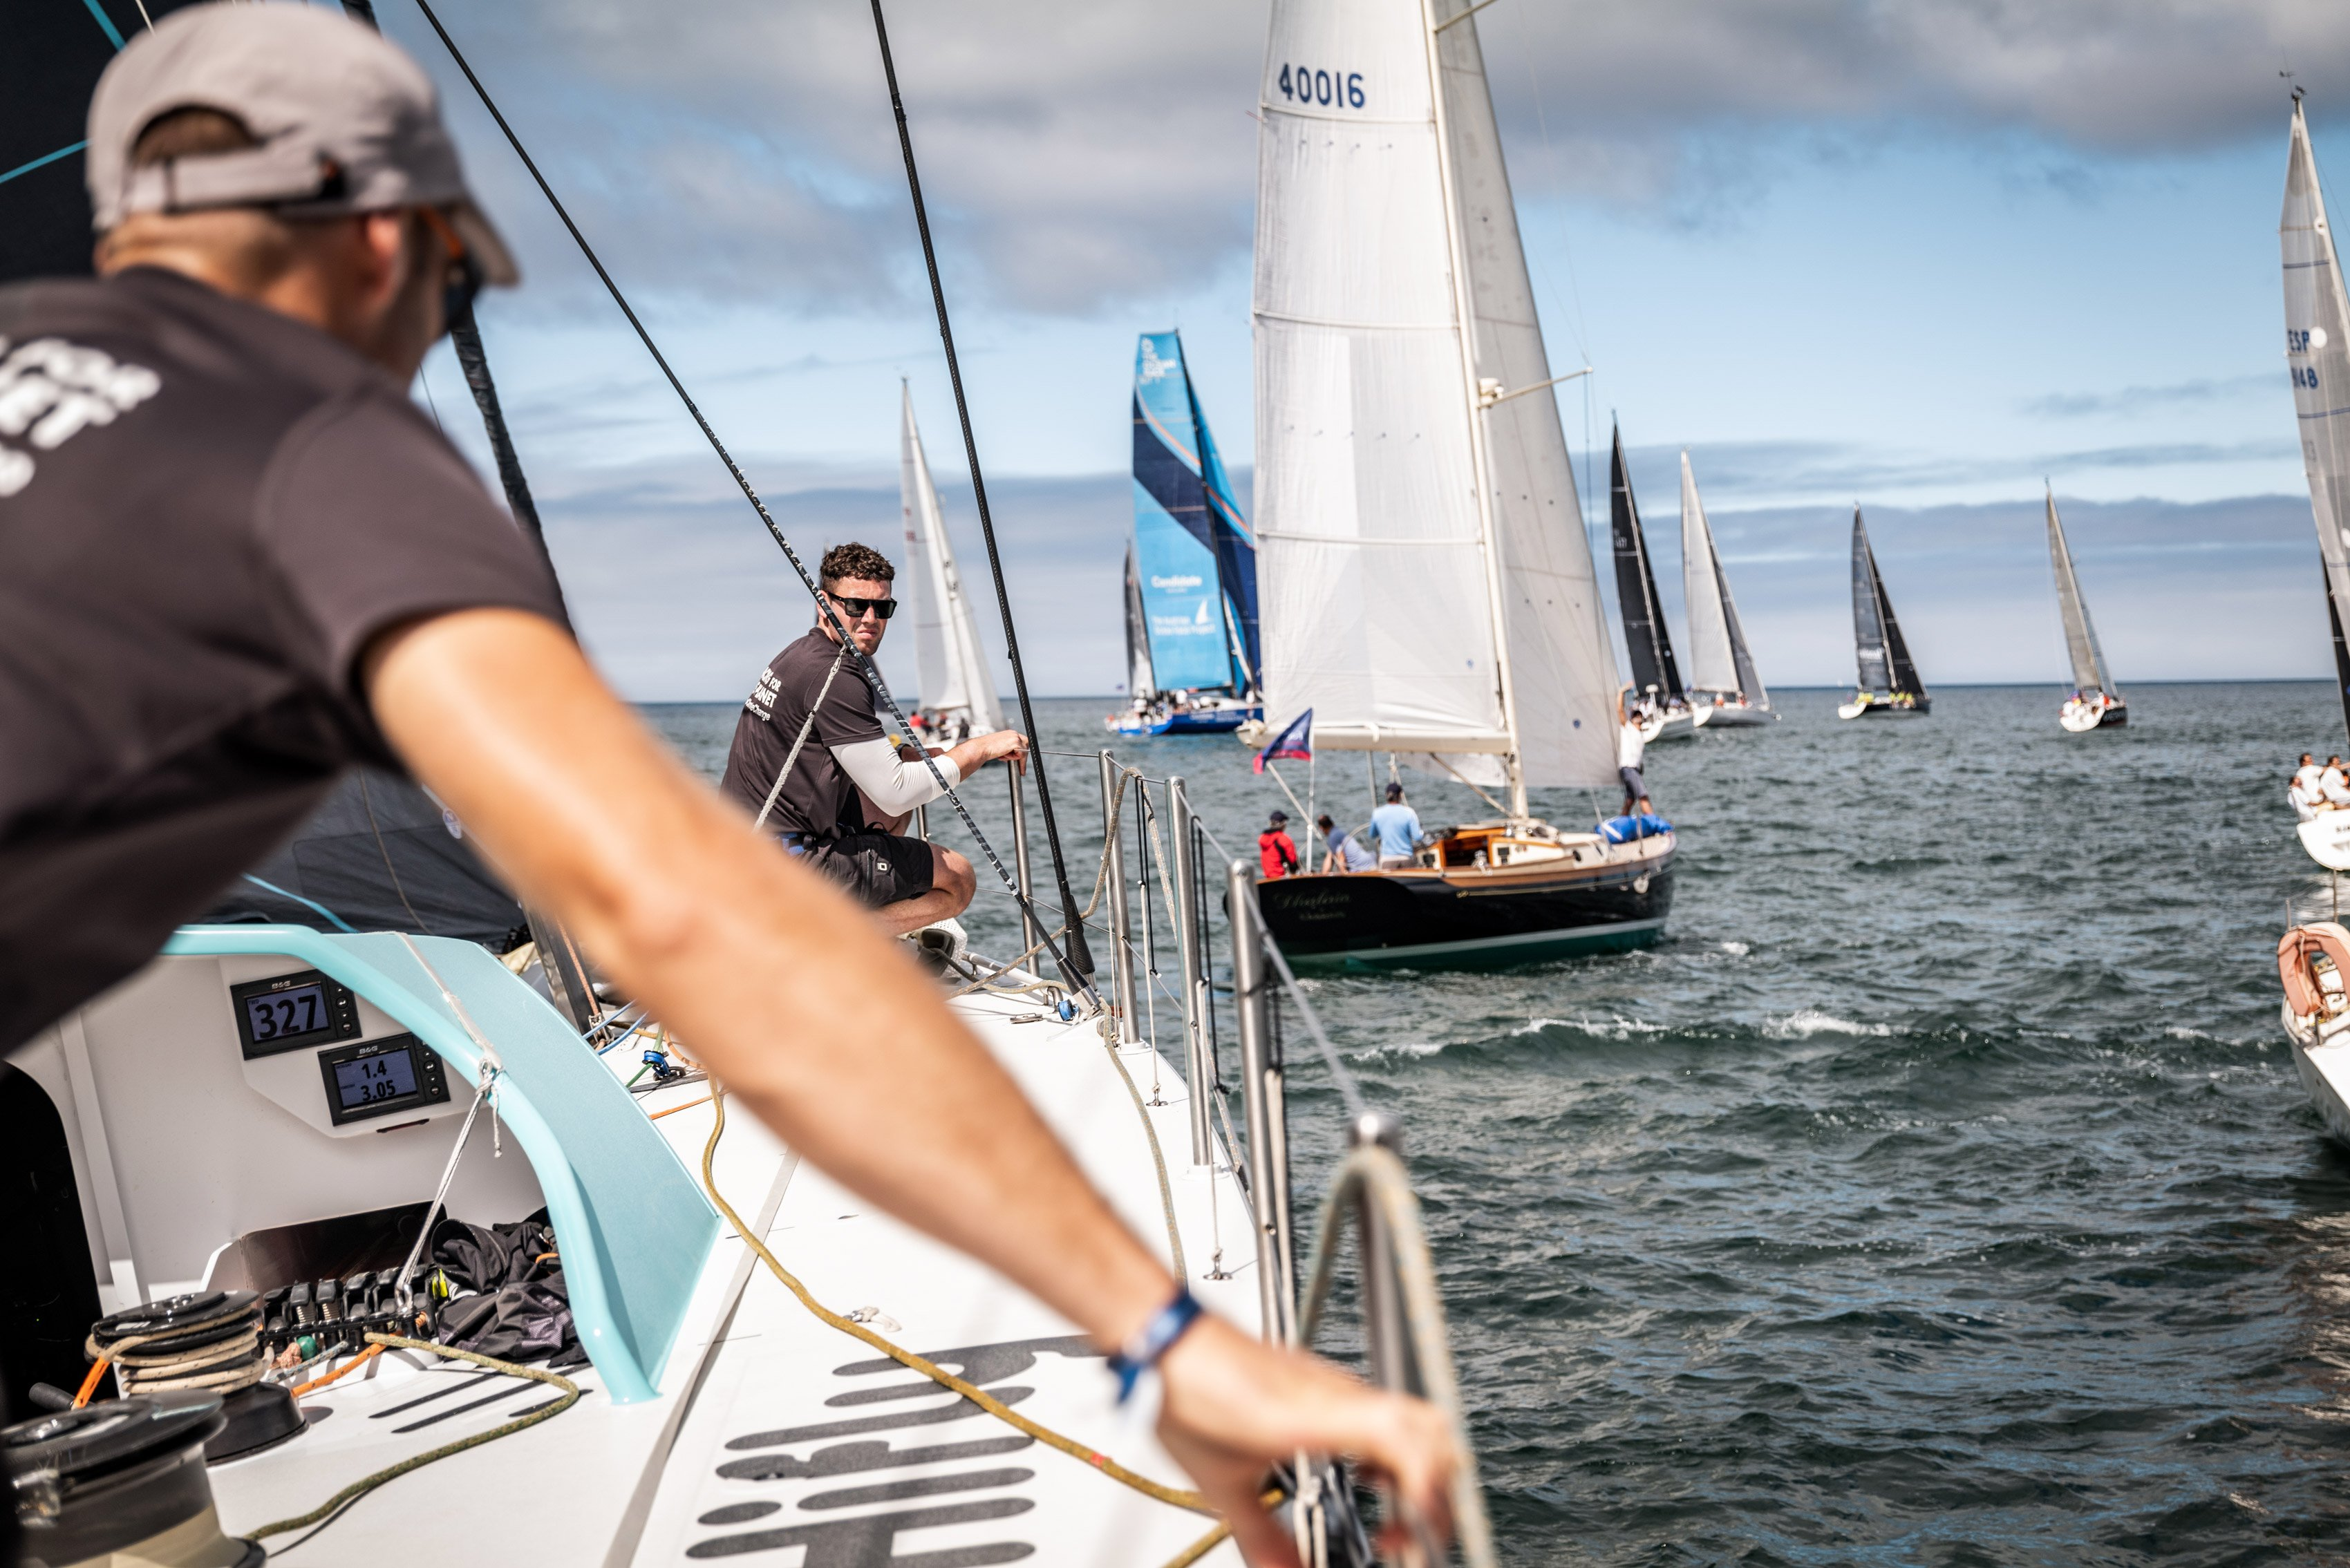 The Ocean Race Europe joins Sailing Trophy